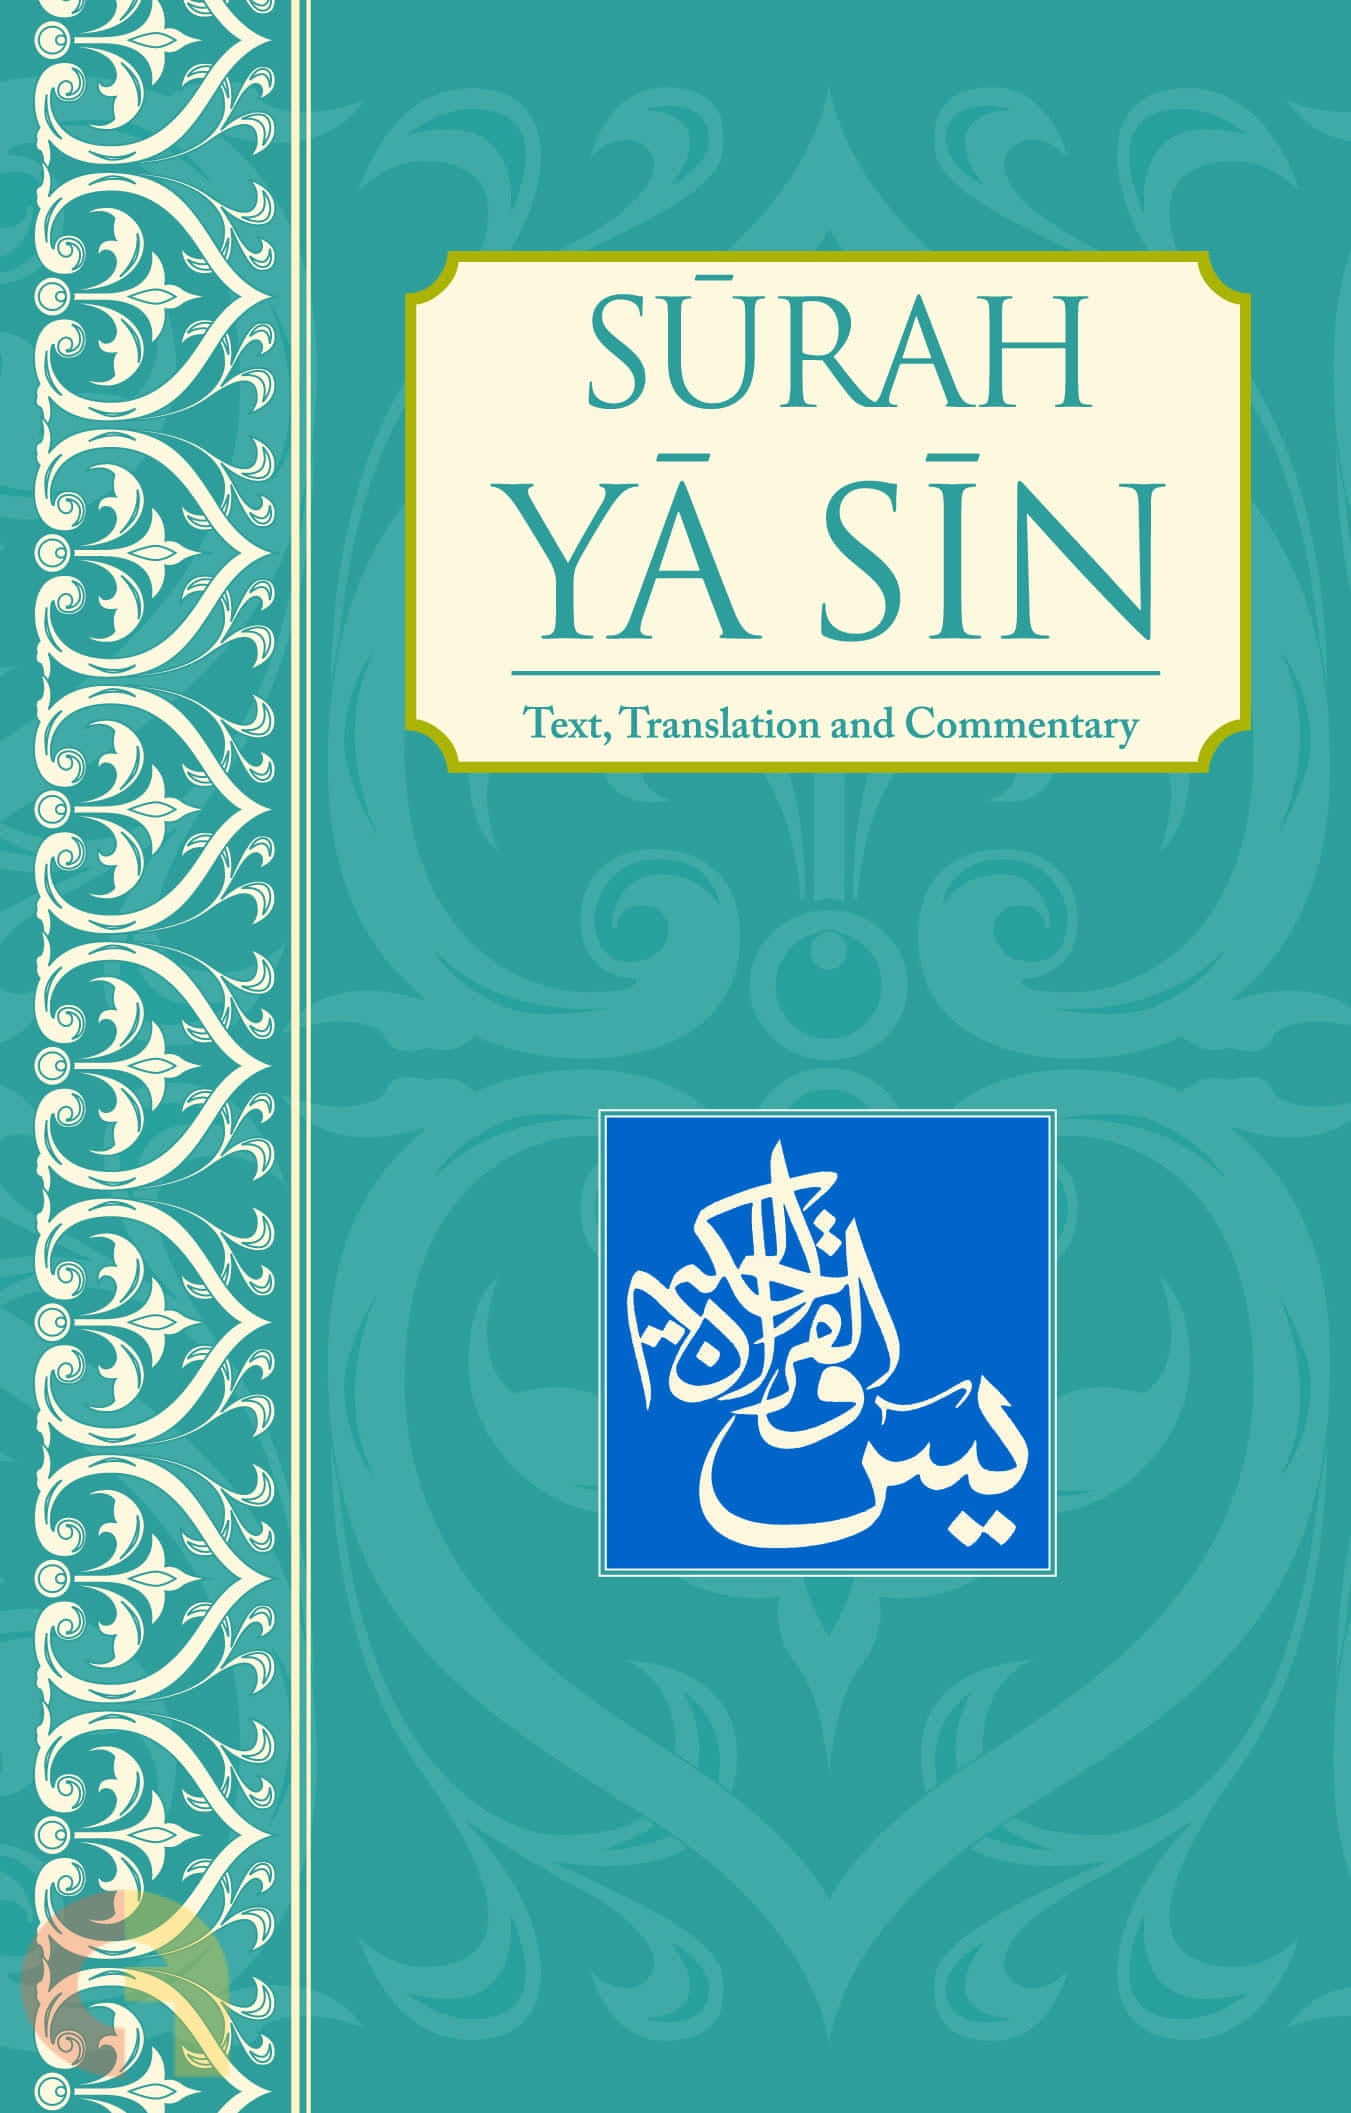 Surah Ya Sin: Text, Translation and Commentary